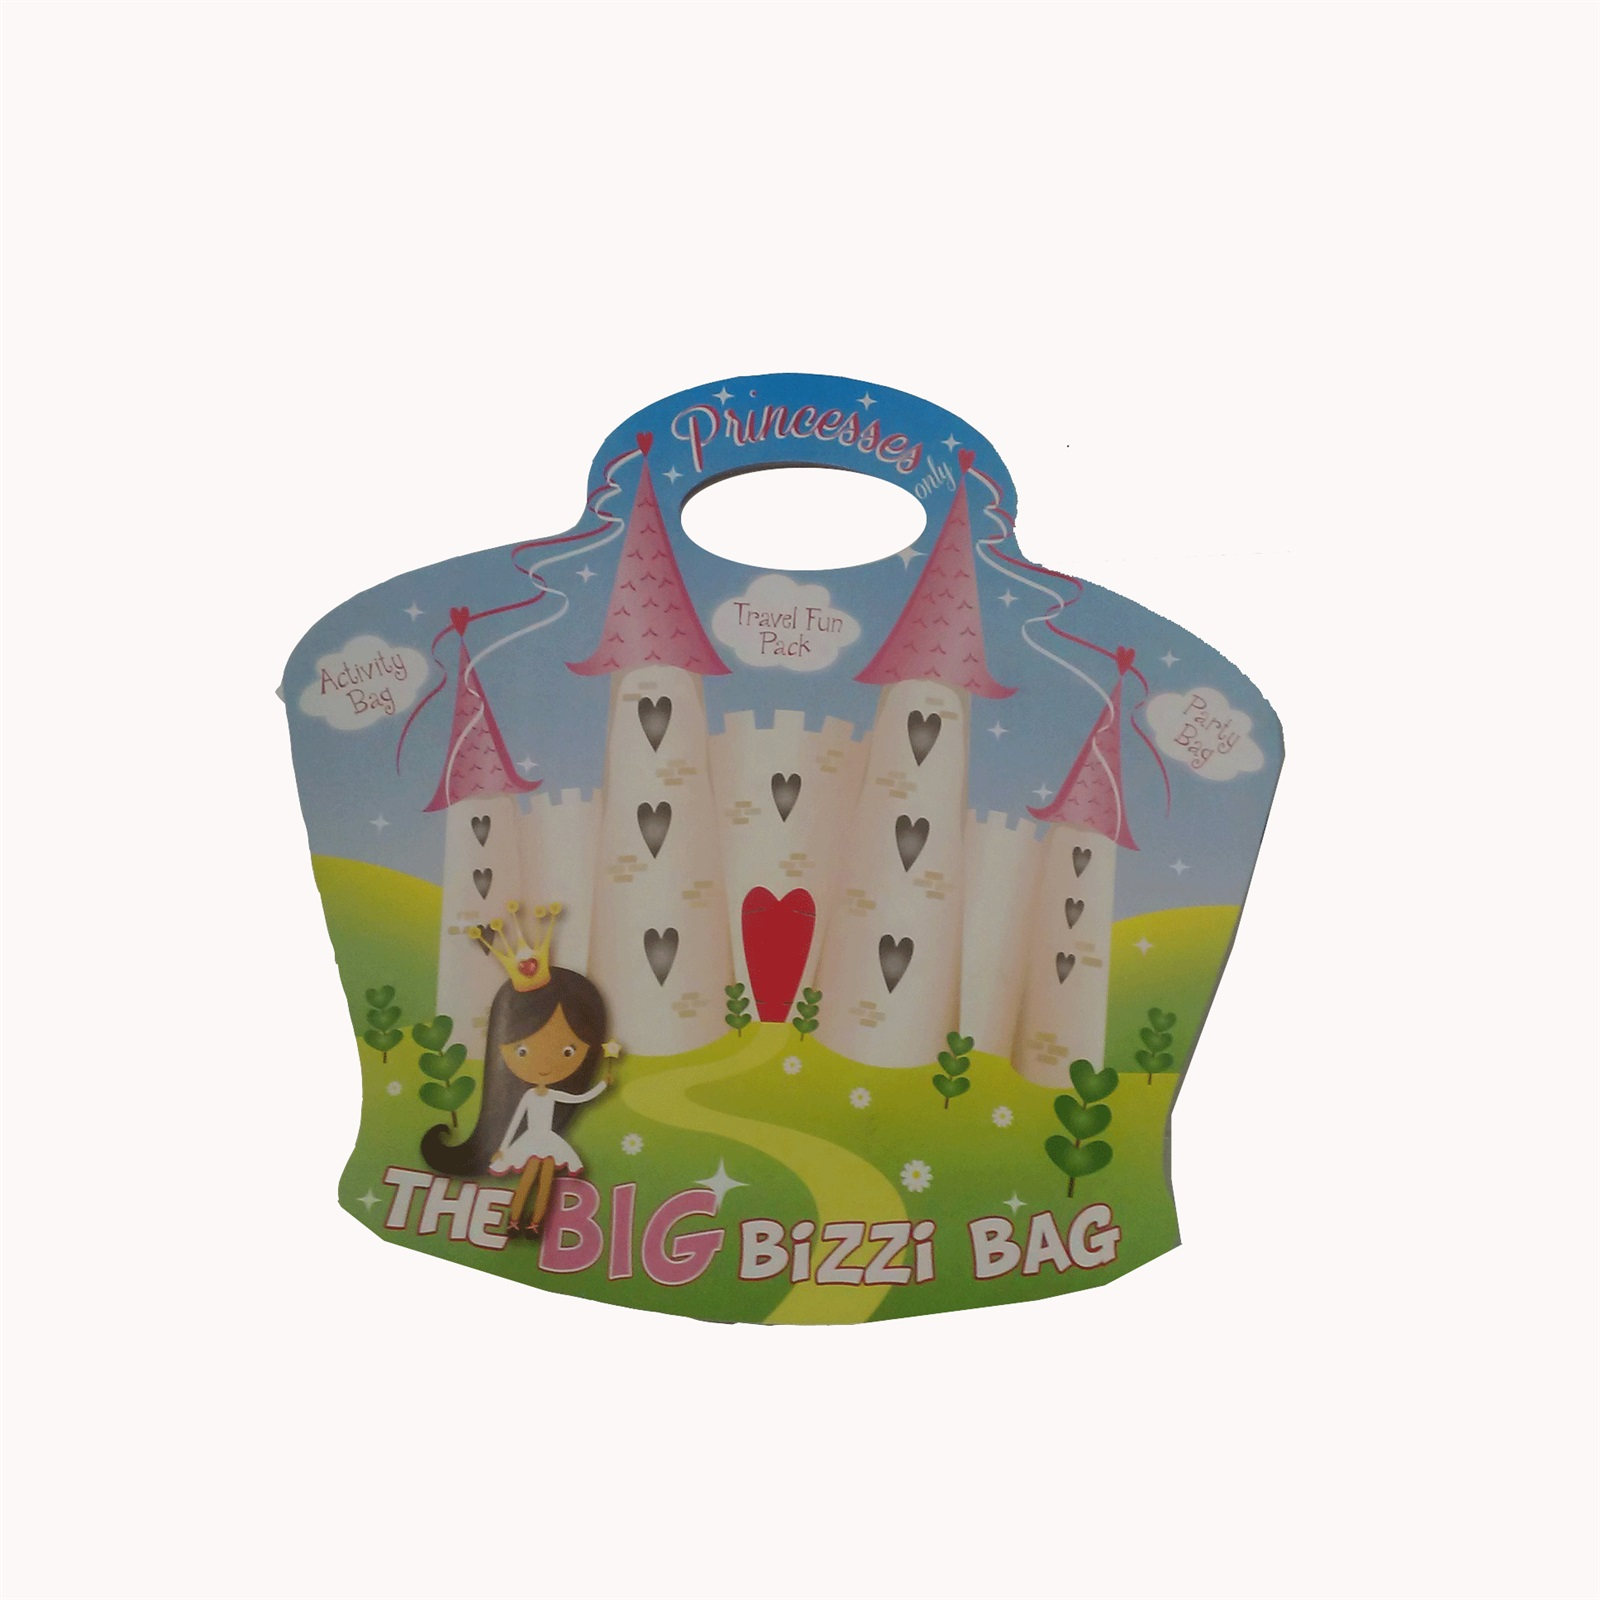 Trampoline Party Glasgow: Little Princess Party Bag